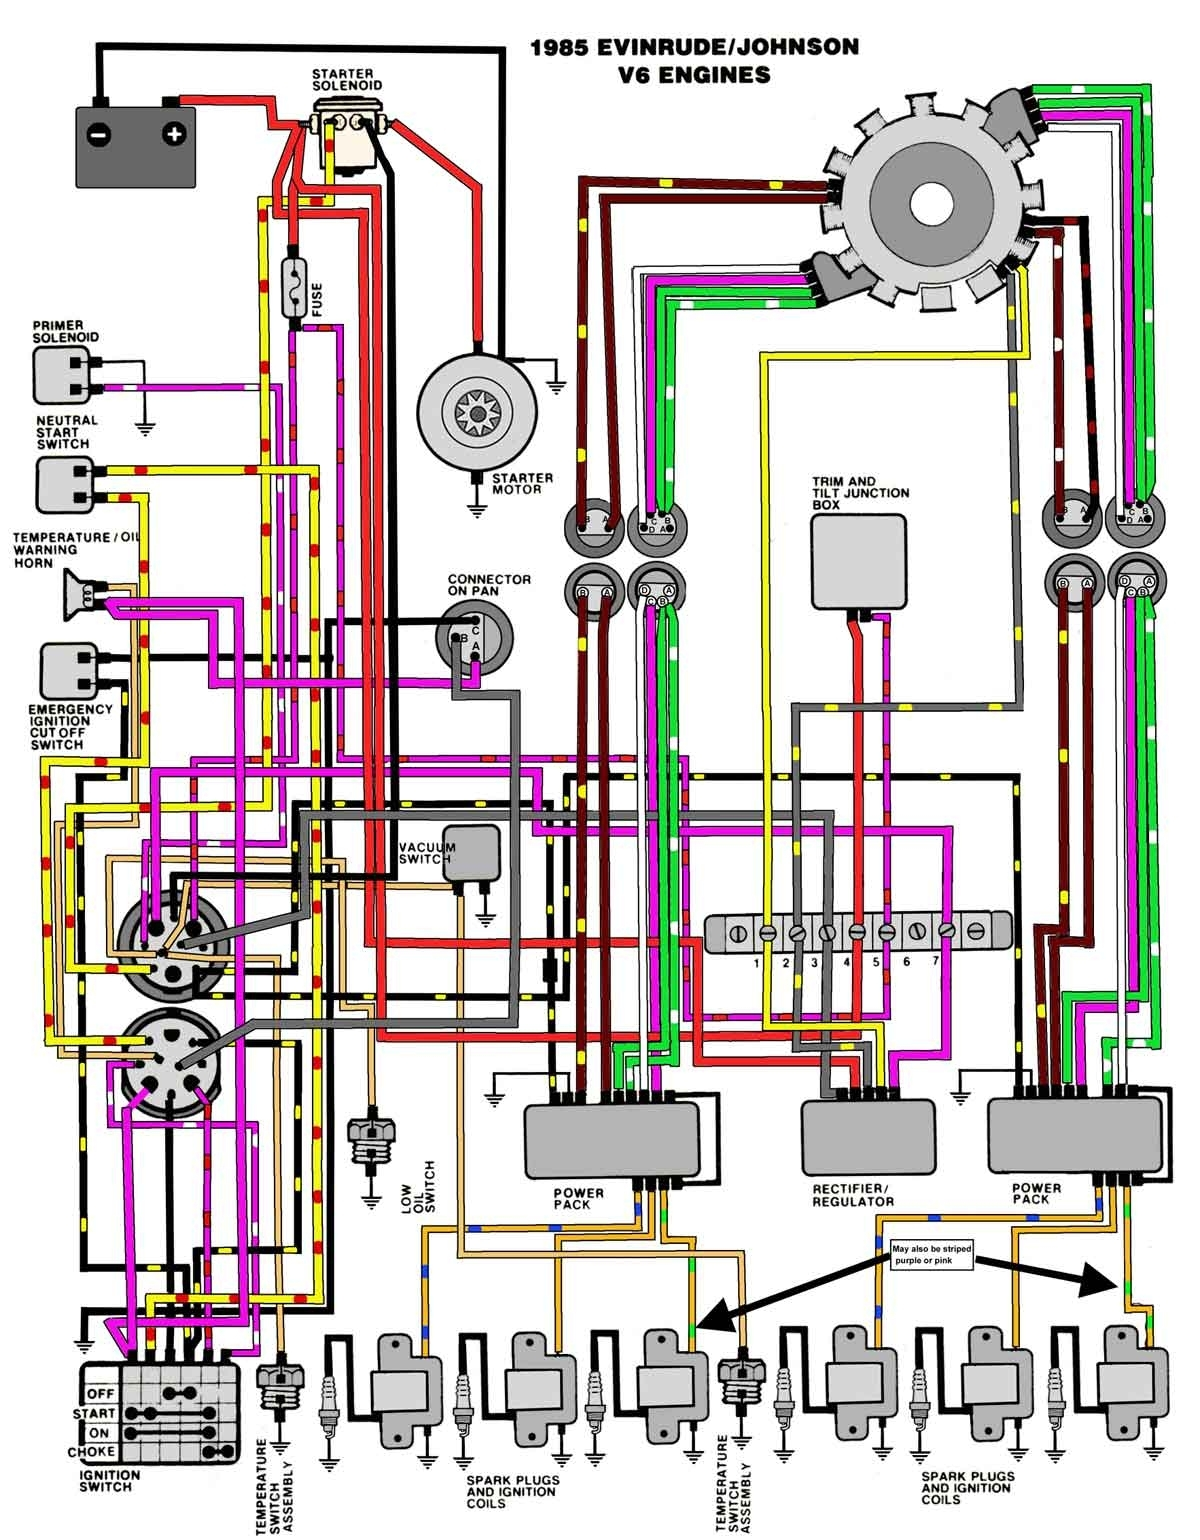 johnson 70 hp wiring diagram auto electrical wiring diagram mariner 60 hp wiring diagram johnson 70 hp wiring diagram